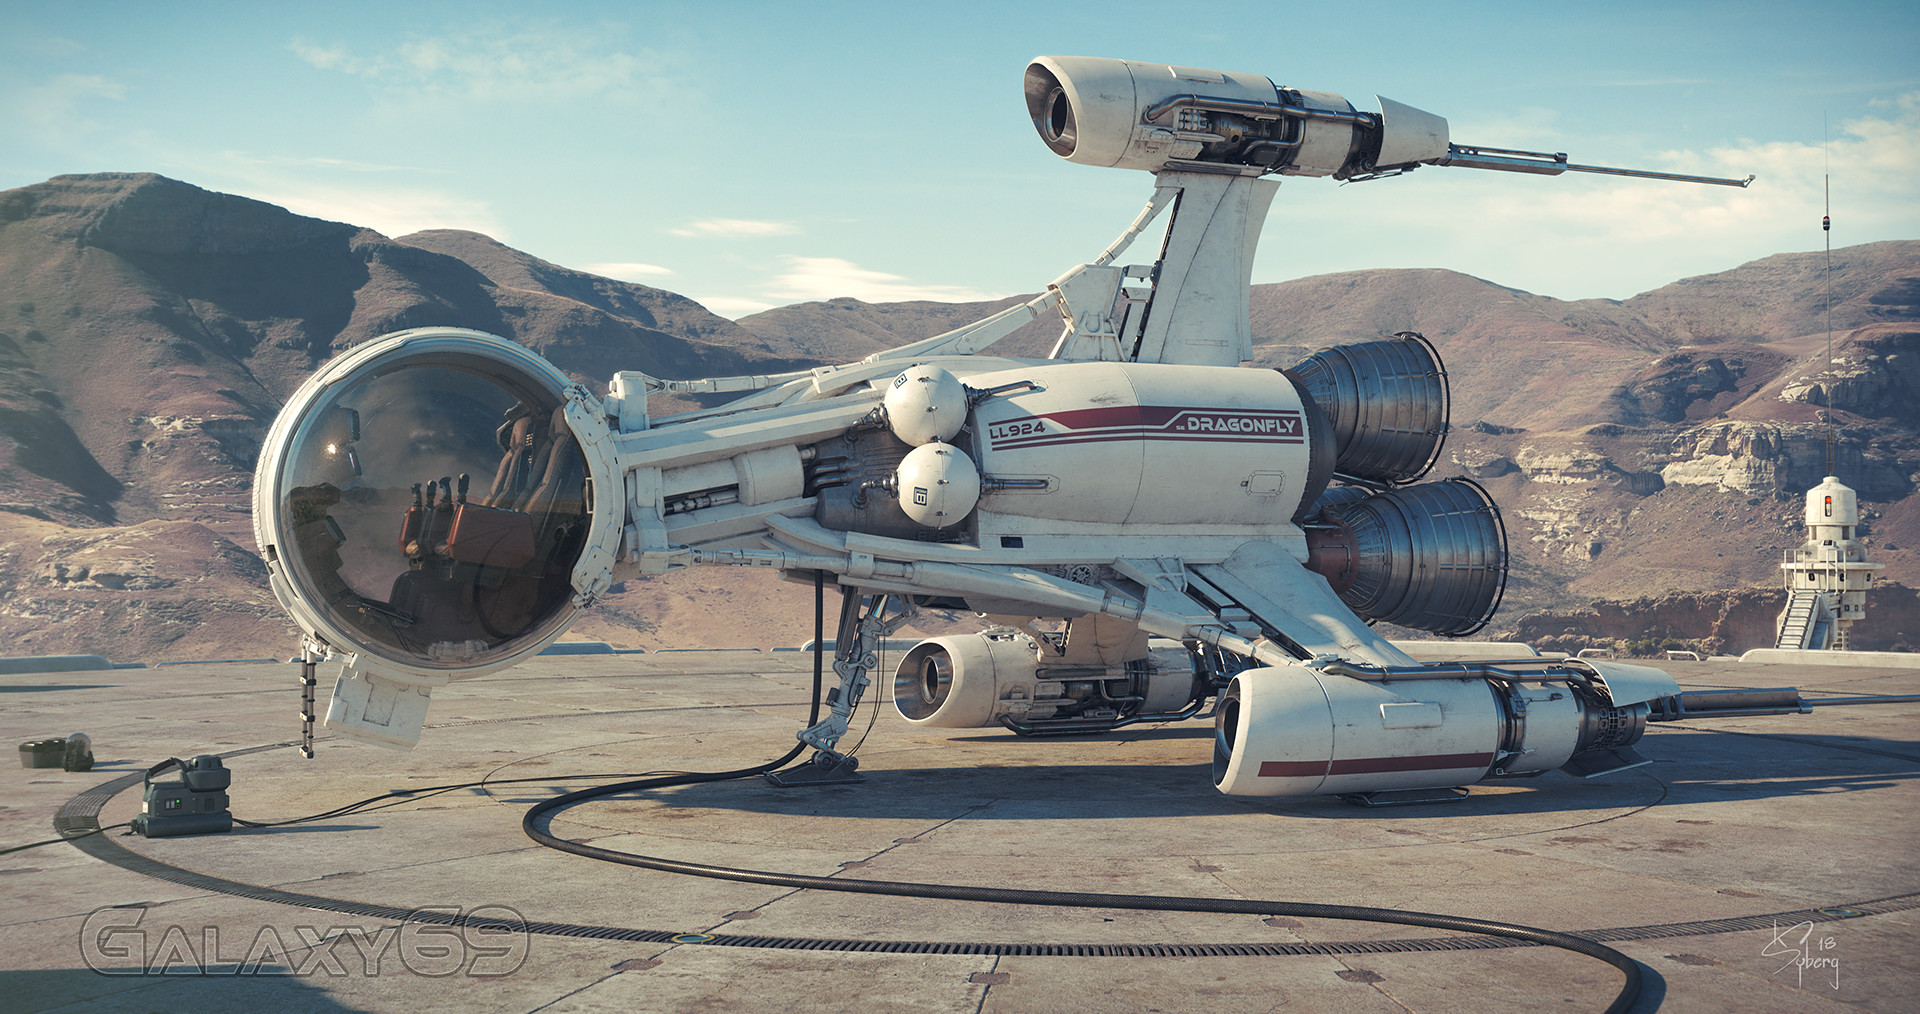 The Super Impressive Sci-Fi Art of Kim Syberg